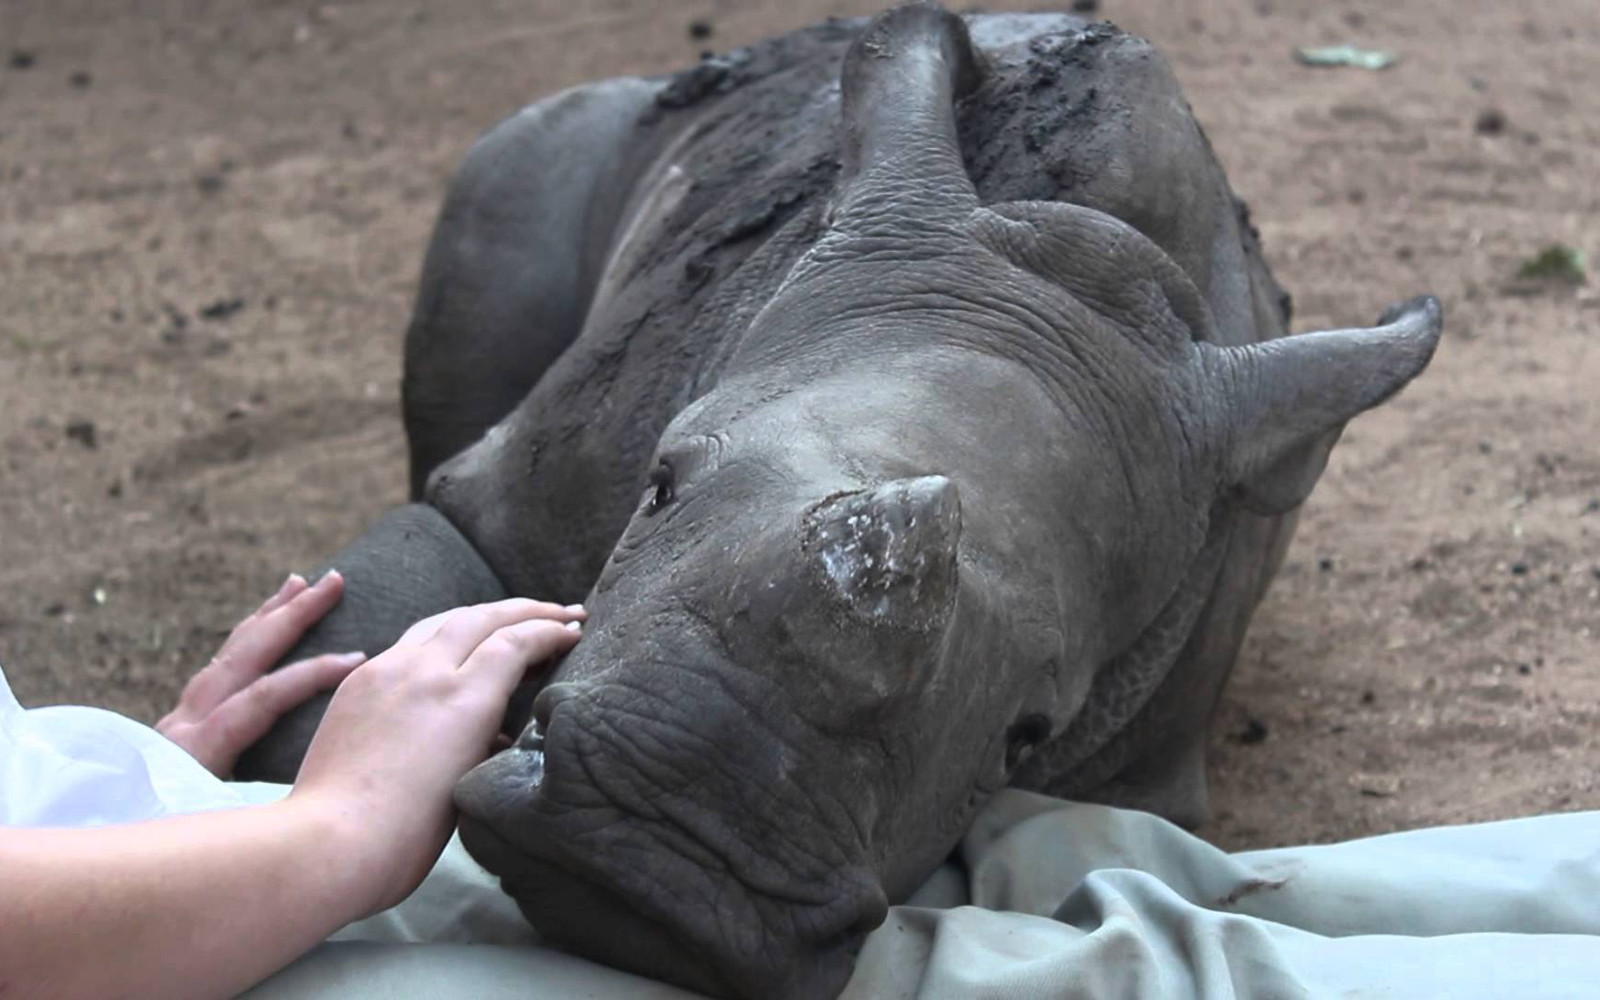 The Important Lesson We Can to Learn From Gertjie the Orphaned Rhino That Will Help Save This Species